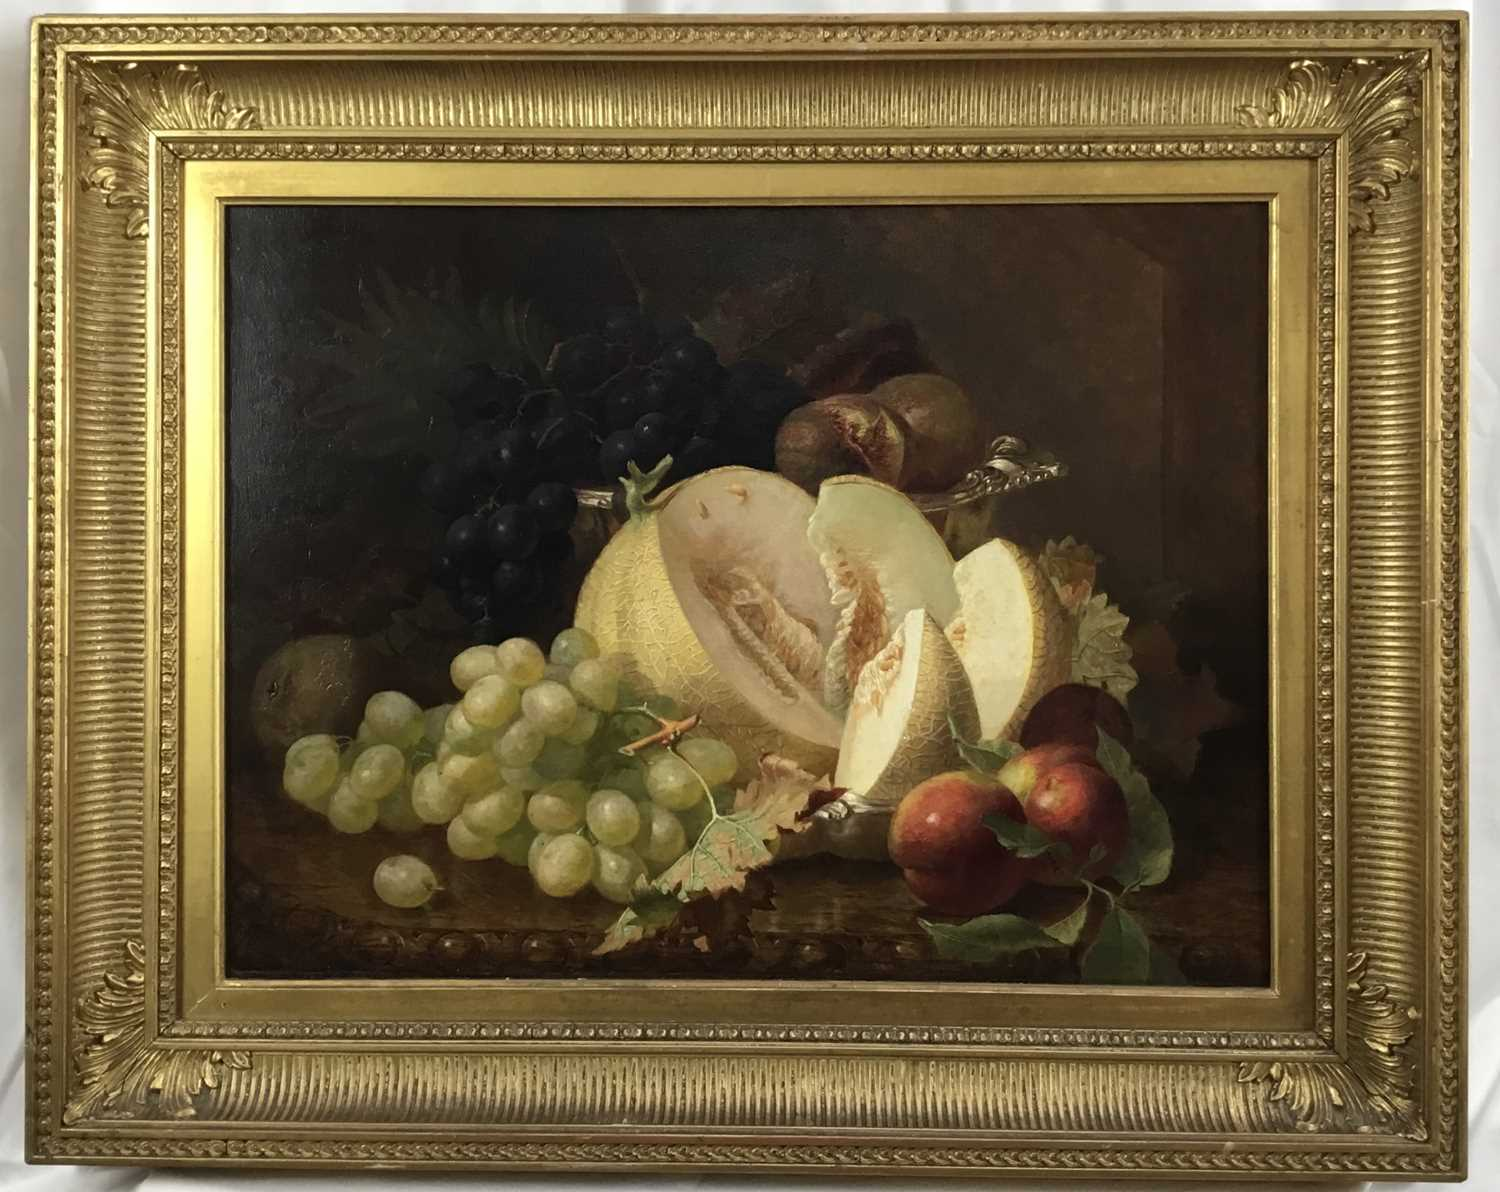 Eloise Harriet Stannard (1828-1915) oil on canvas, Peaches and grapes - Image 5 of 10